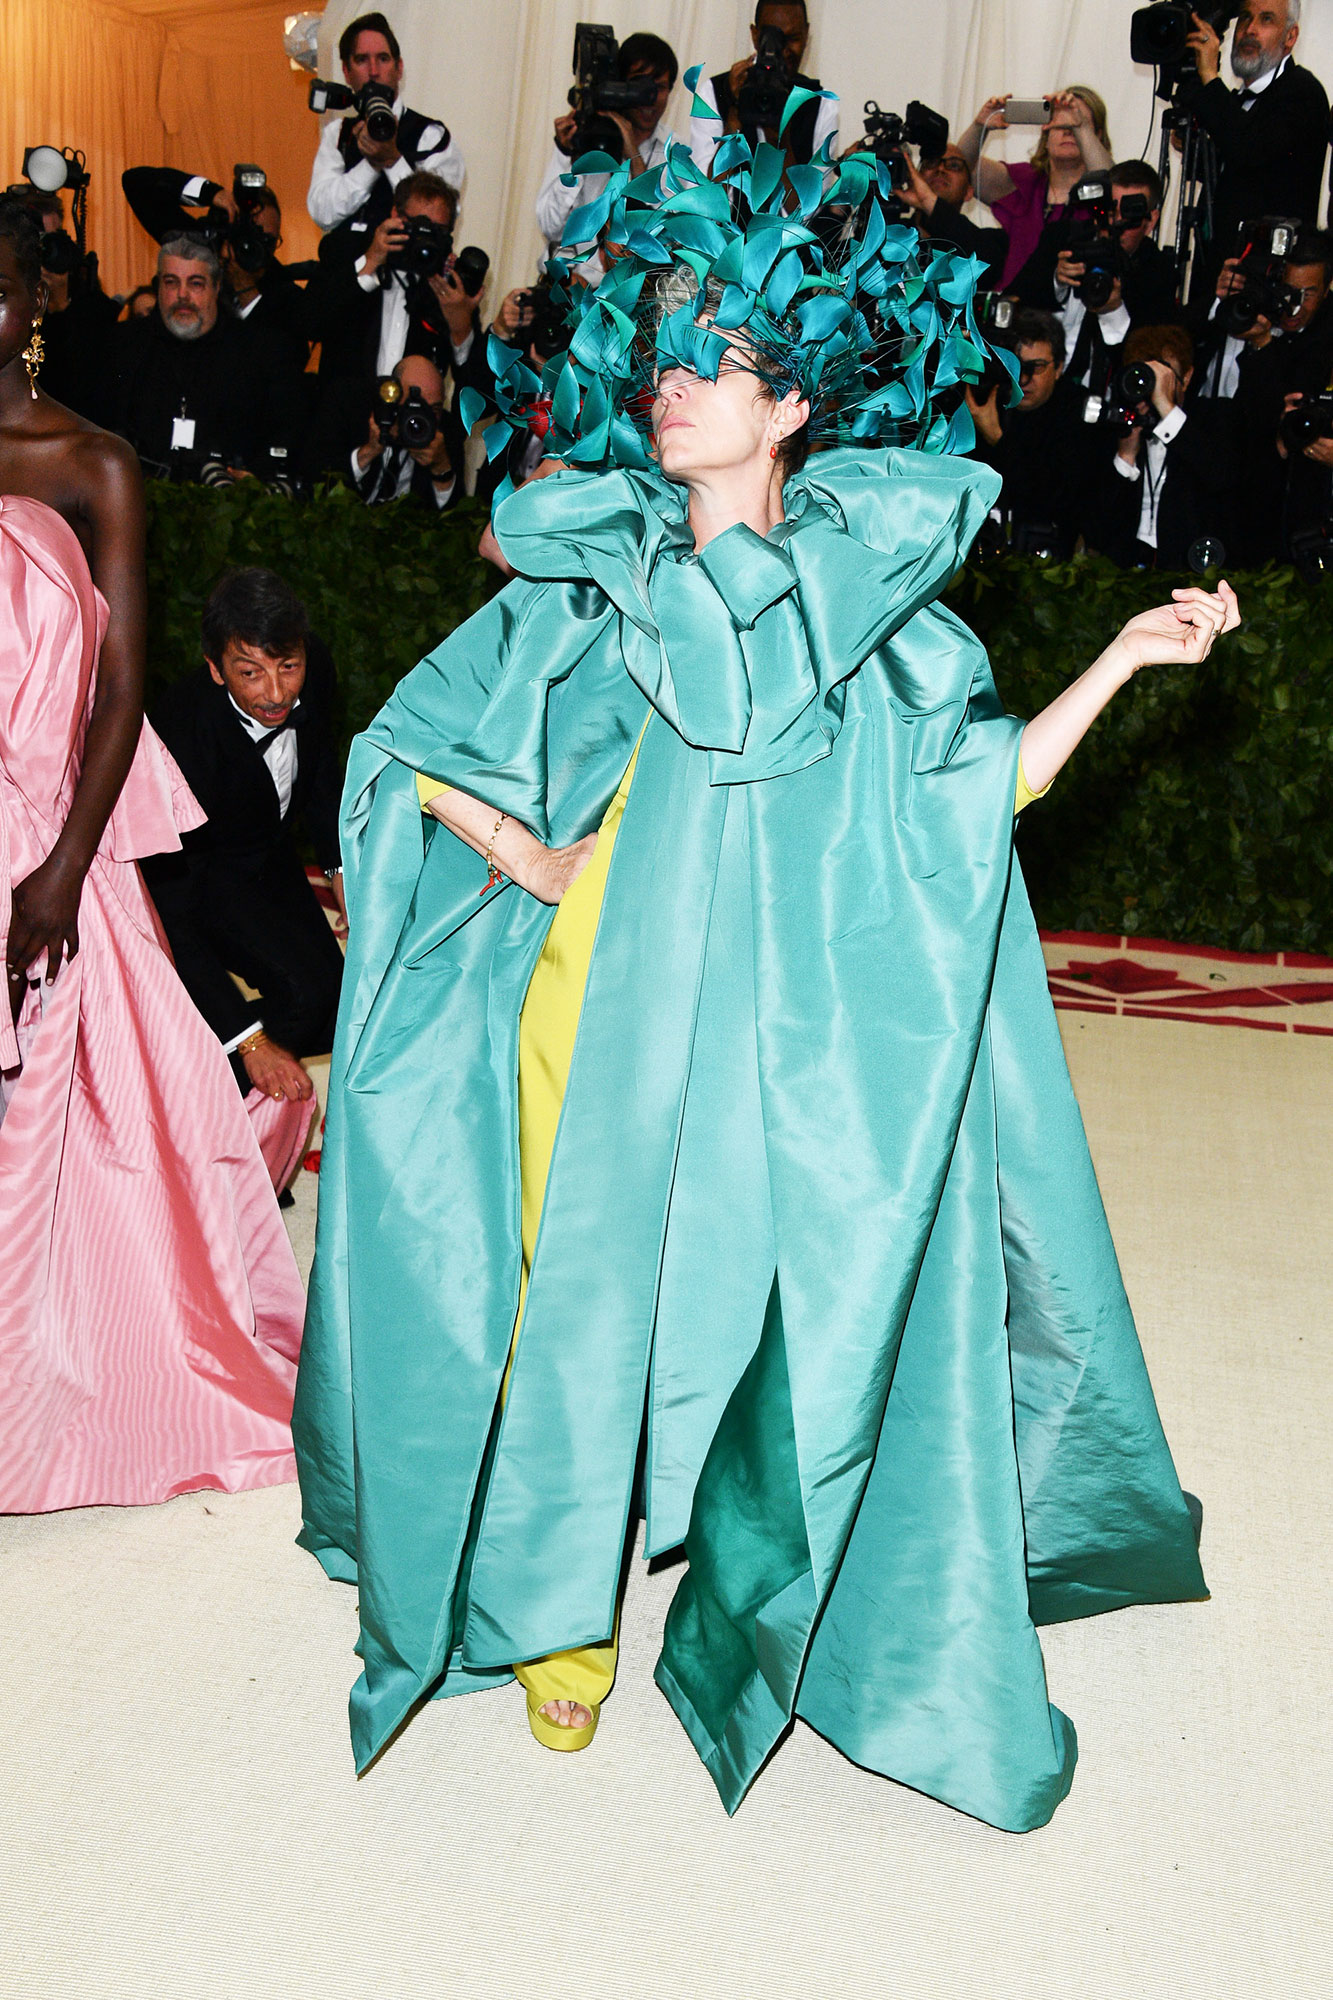 Frances McDormand The Wild Met Gala Red Carpet Fashion Looks We Can't Stop Thinking About - In Valentino Couture.